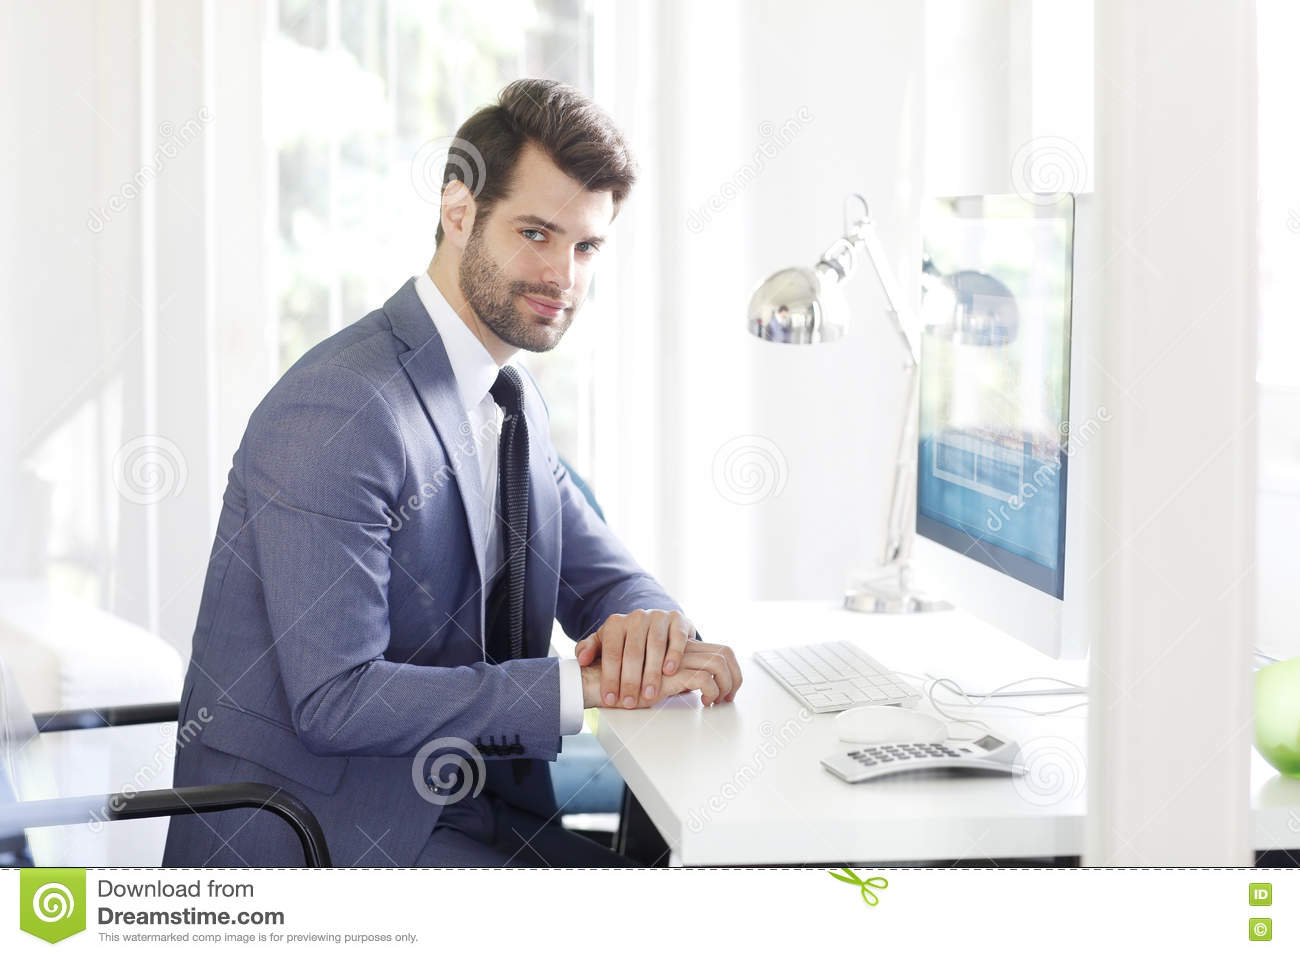 Young Financial Manager Stock Photo - Image: 72242879